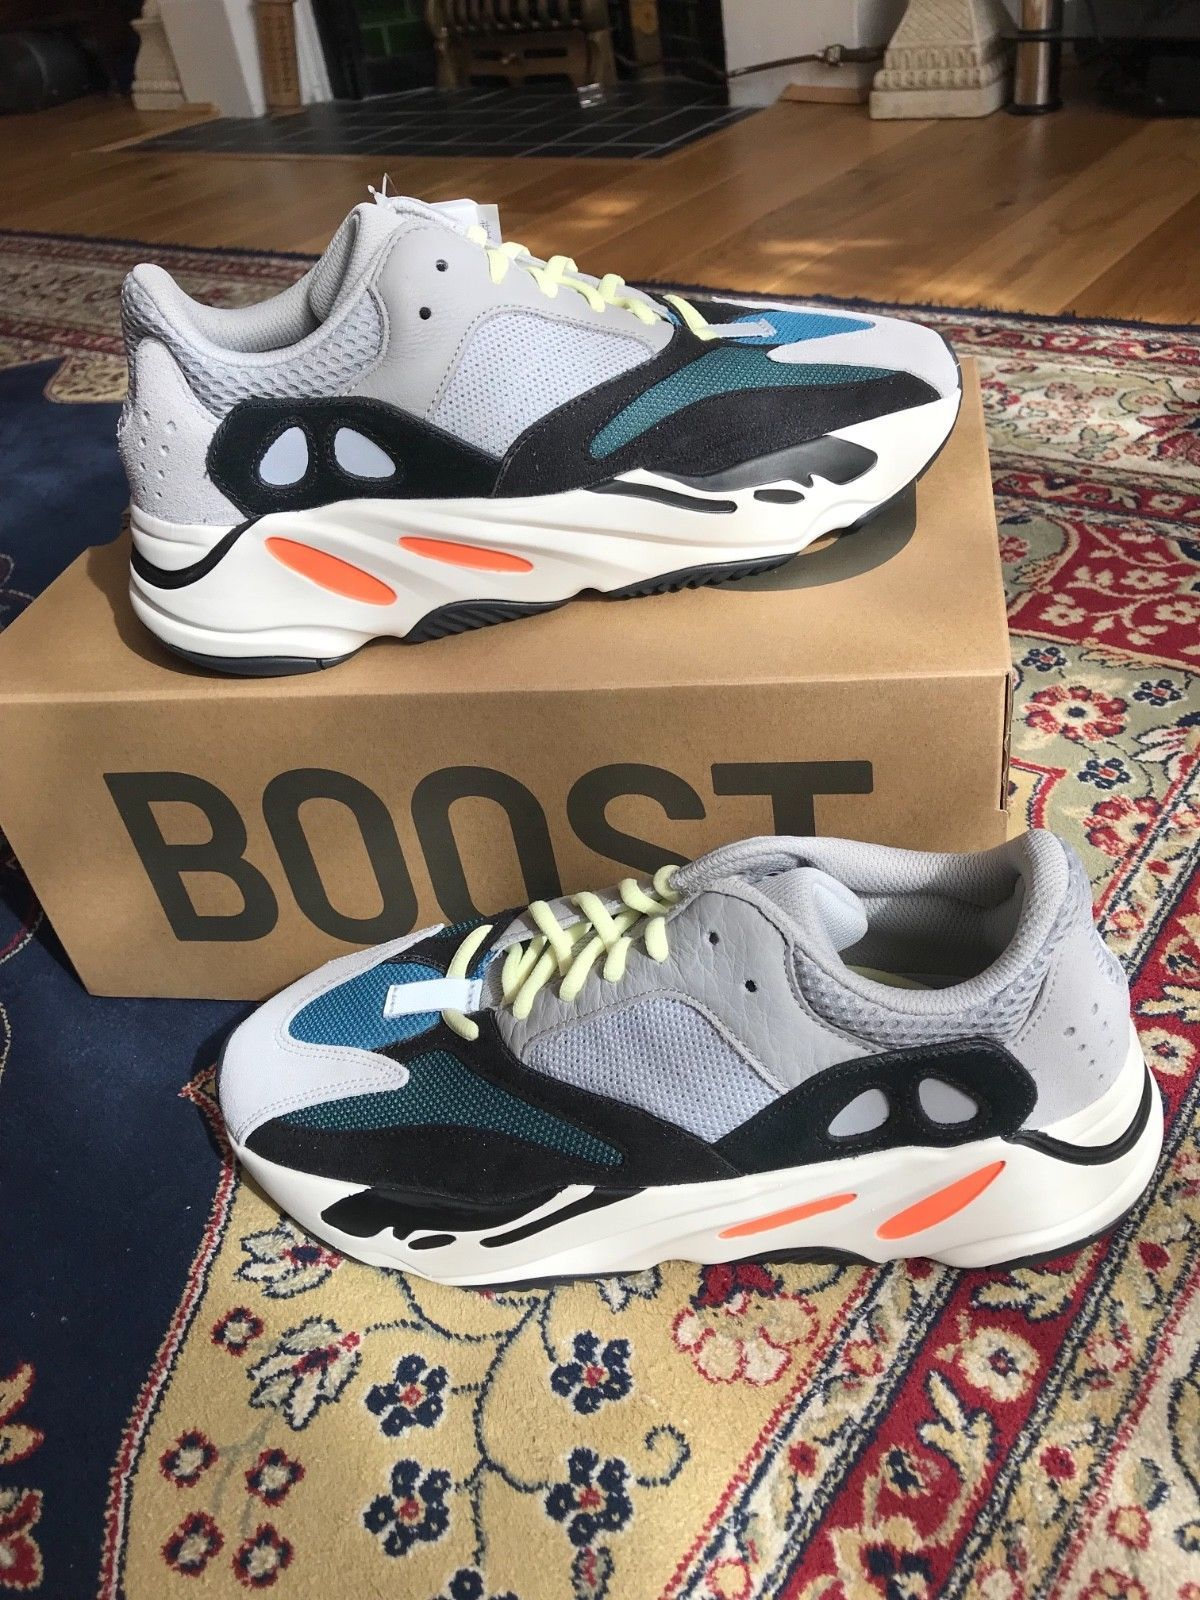 db4811572 100% Authentic Adidas Yeezy Boost 700 UK size 10